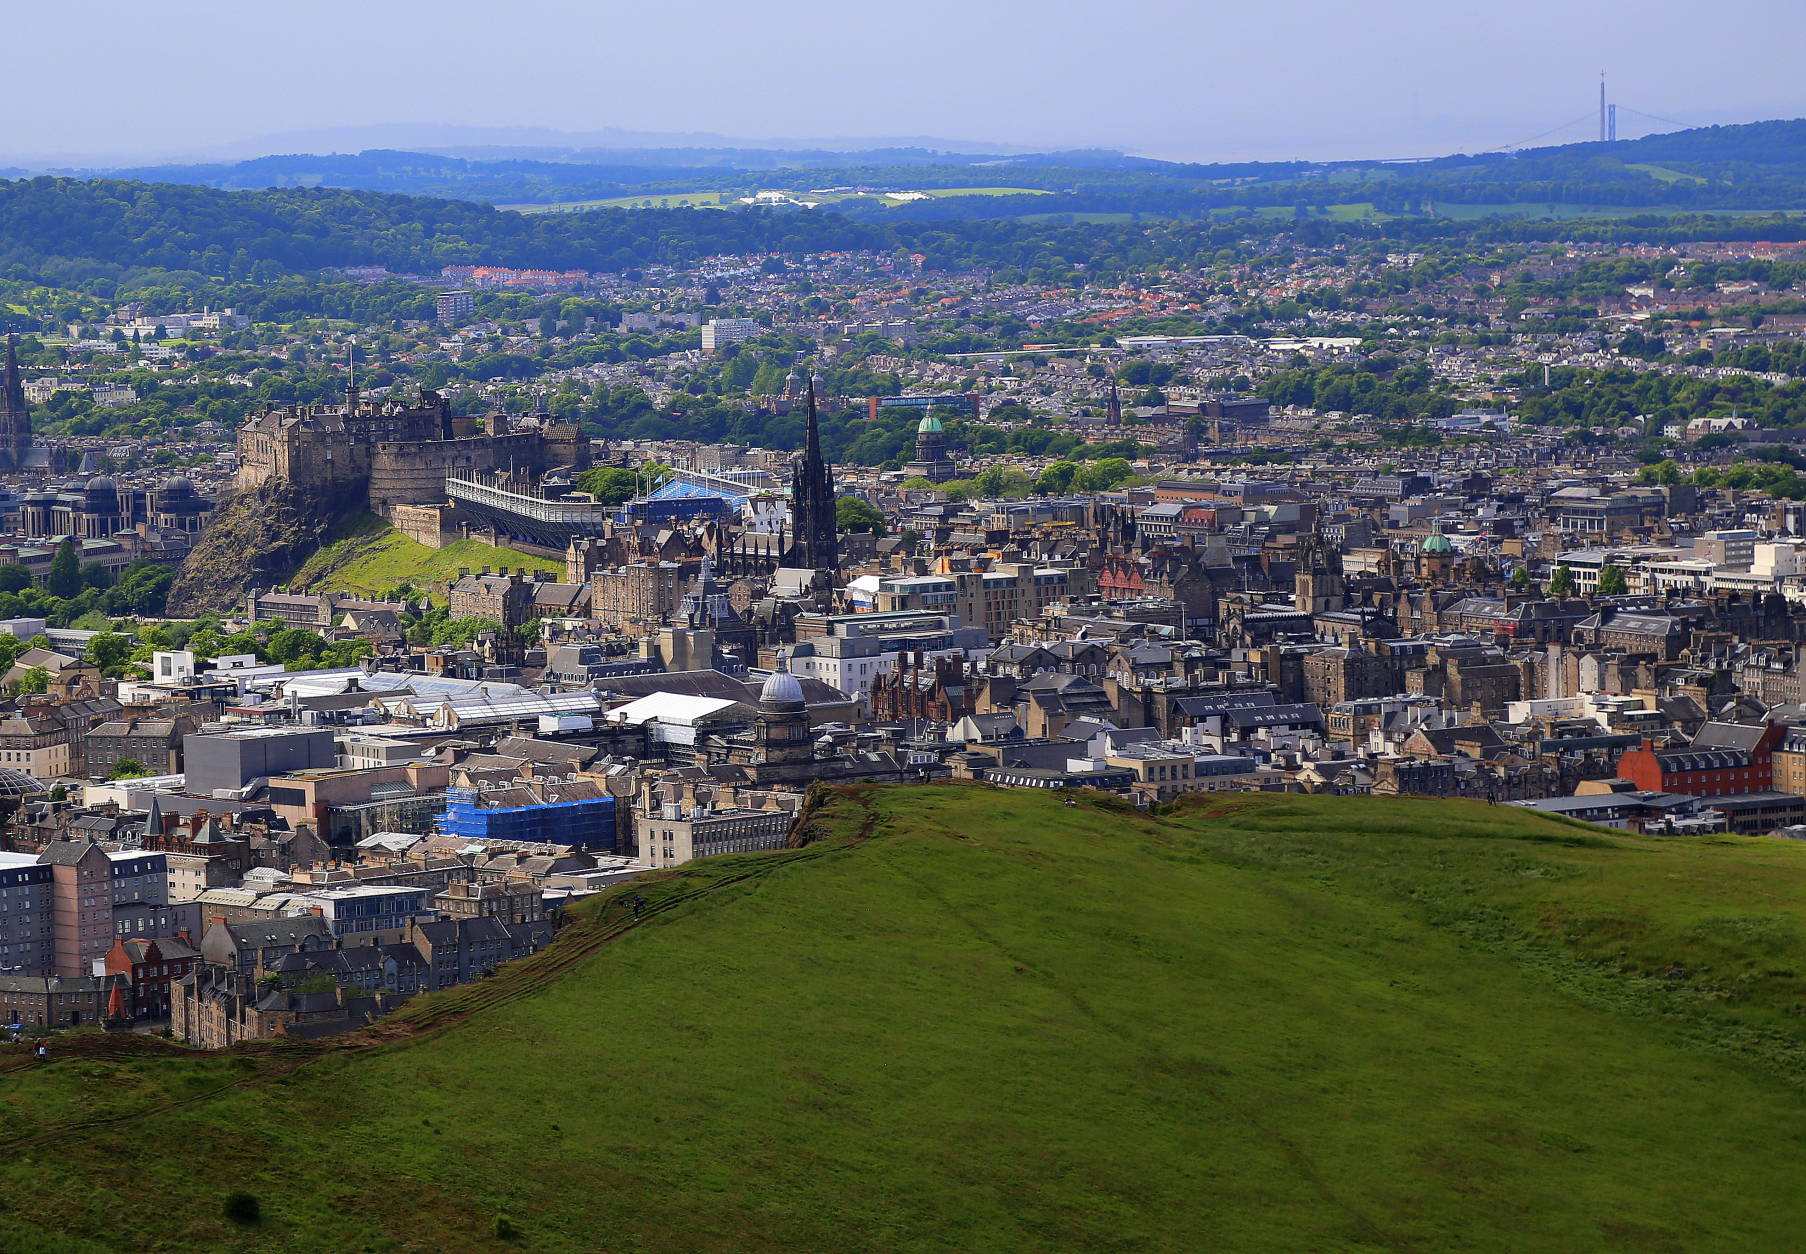 This photo taken June 25, 2016, shows Edinburgh as seen from Arthur's seat. Edinburgh castle is at the left and the spiky black structure in the center is the Scott Monument, commemorating Scottish author Sir Walter Scott. (Michelle Locke via AP)